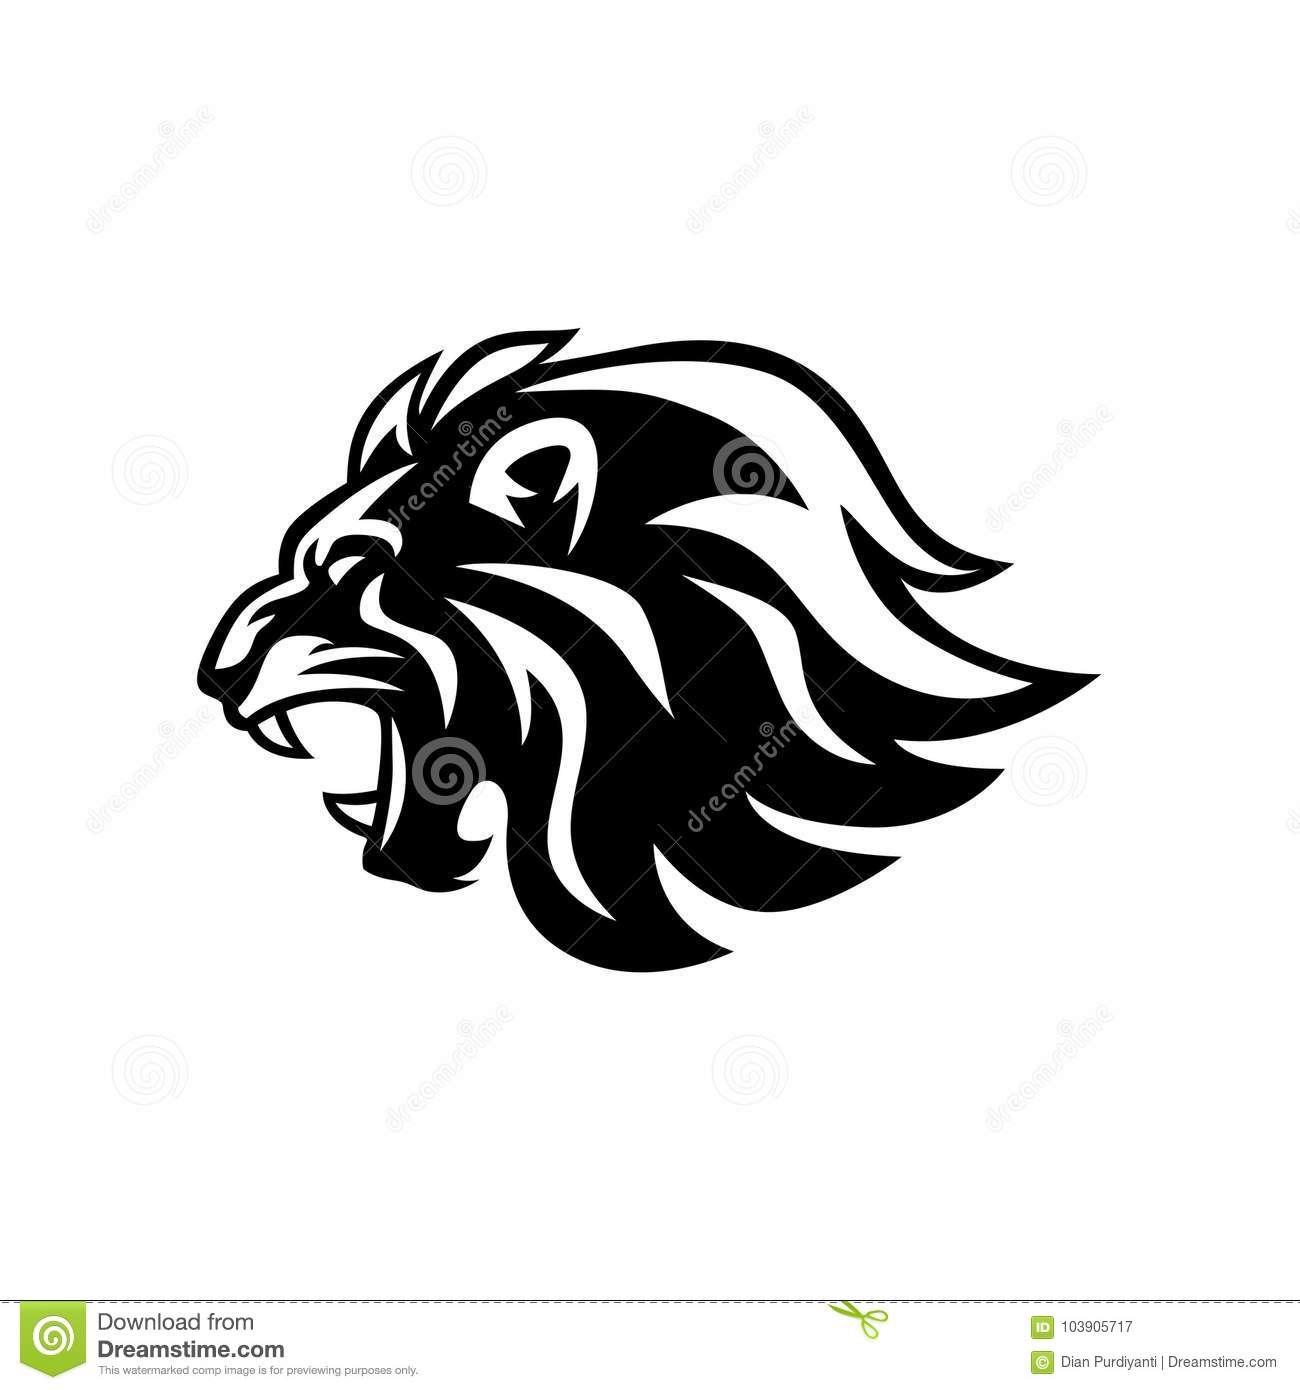 Boos Brullend Lion Head Black And White Vectorlogo Design